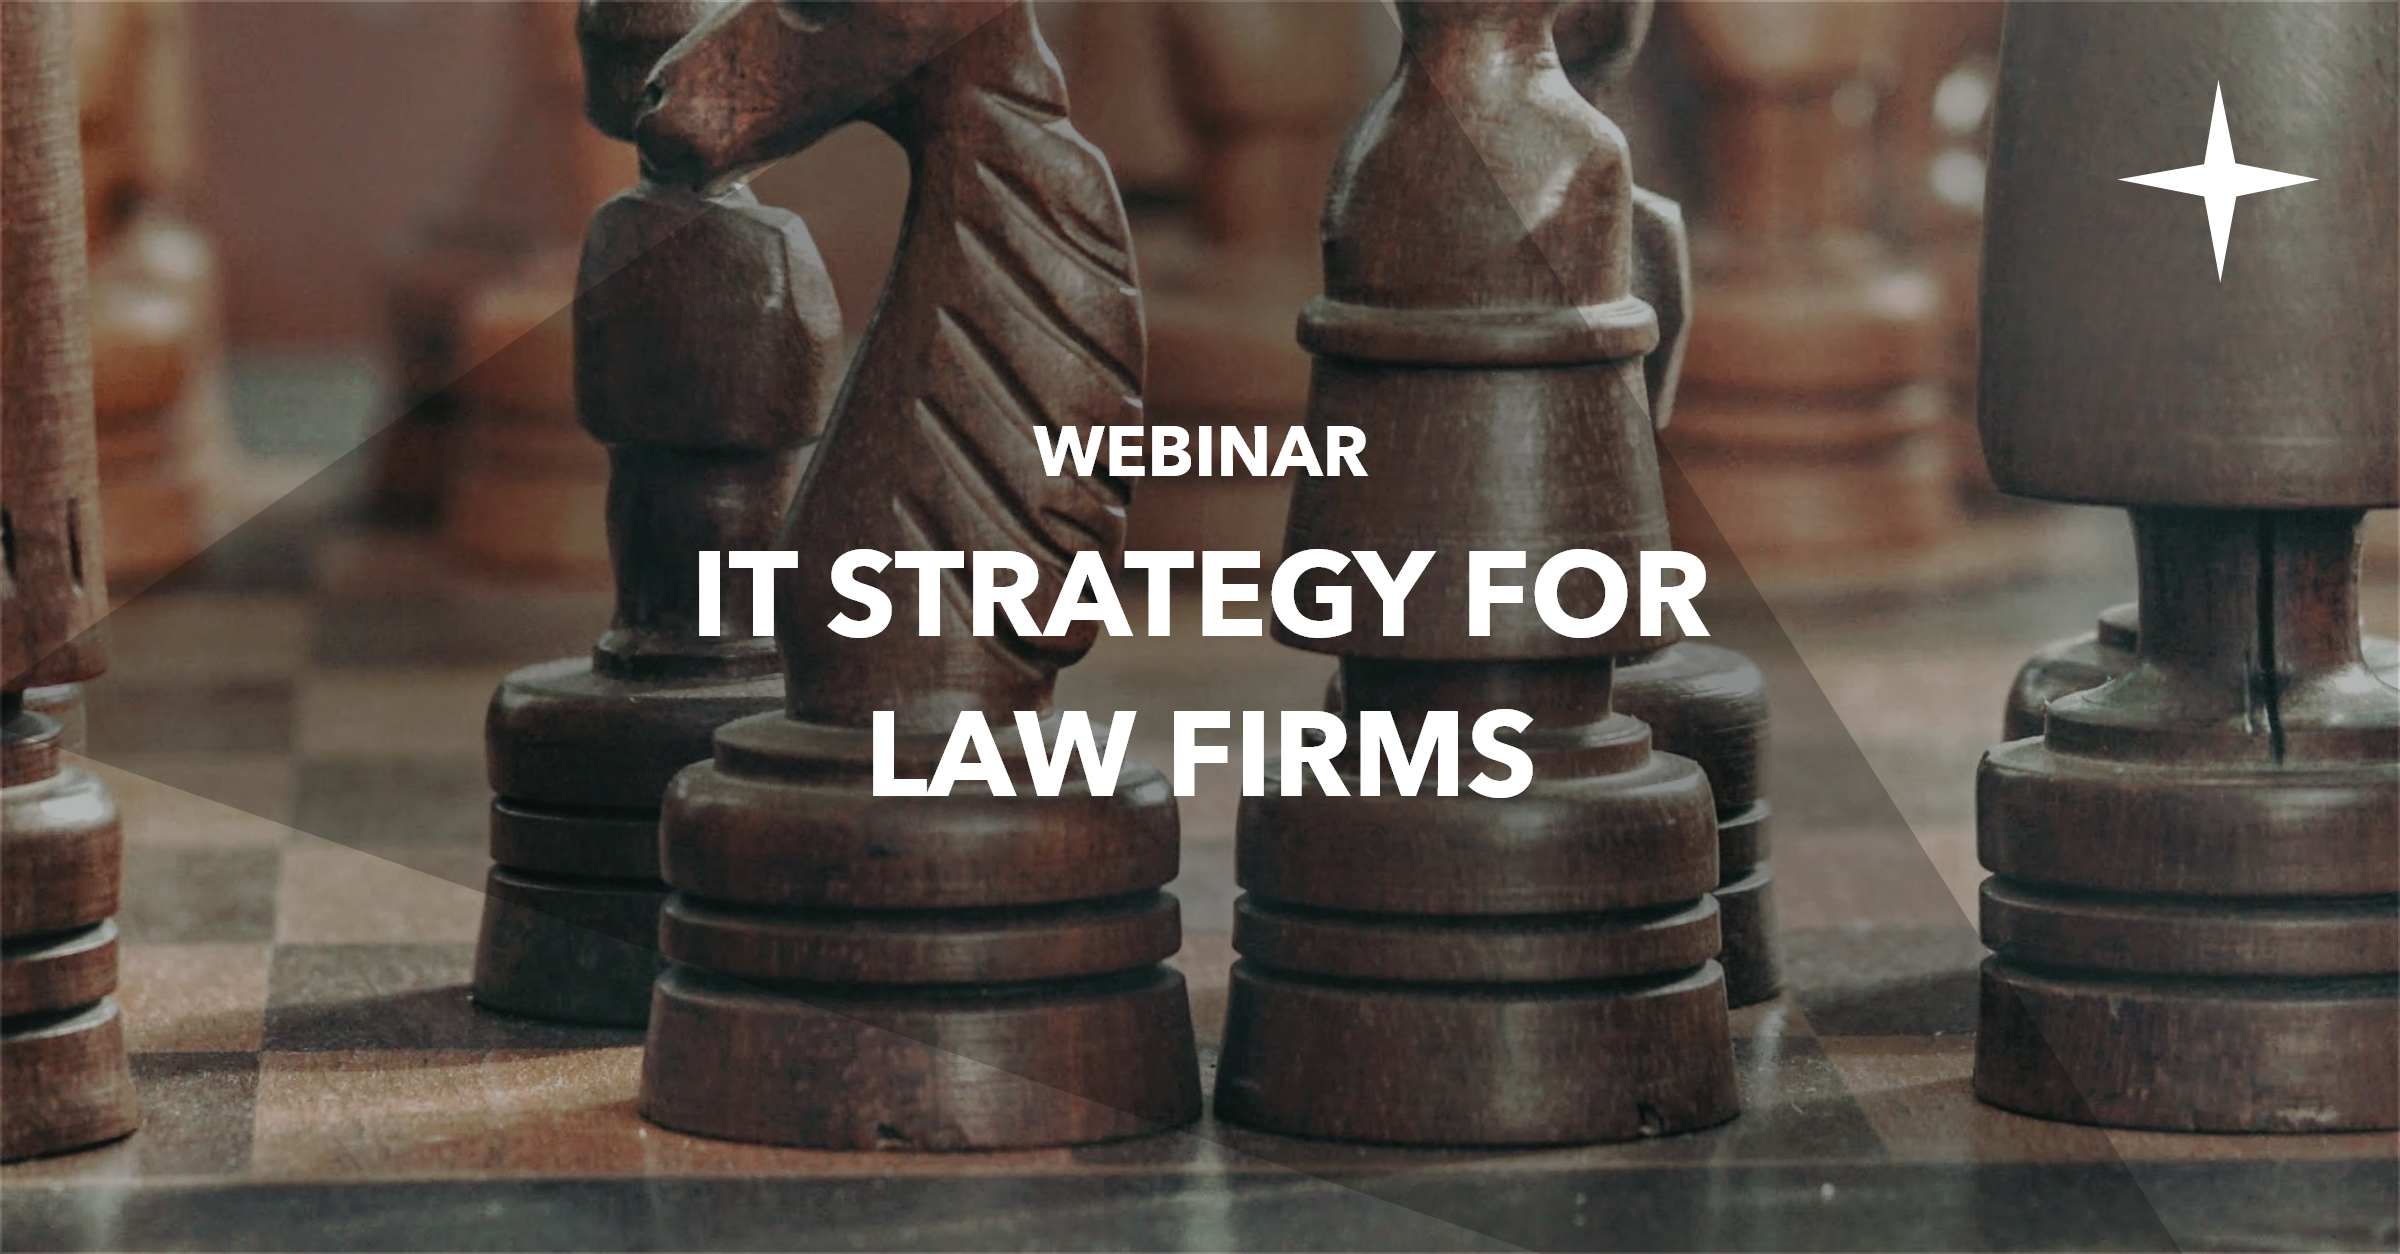 On Demand Webinar - IT Strategy for Law Firms